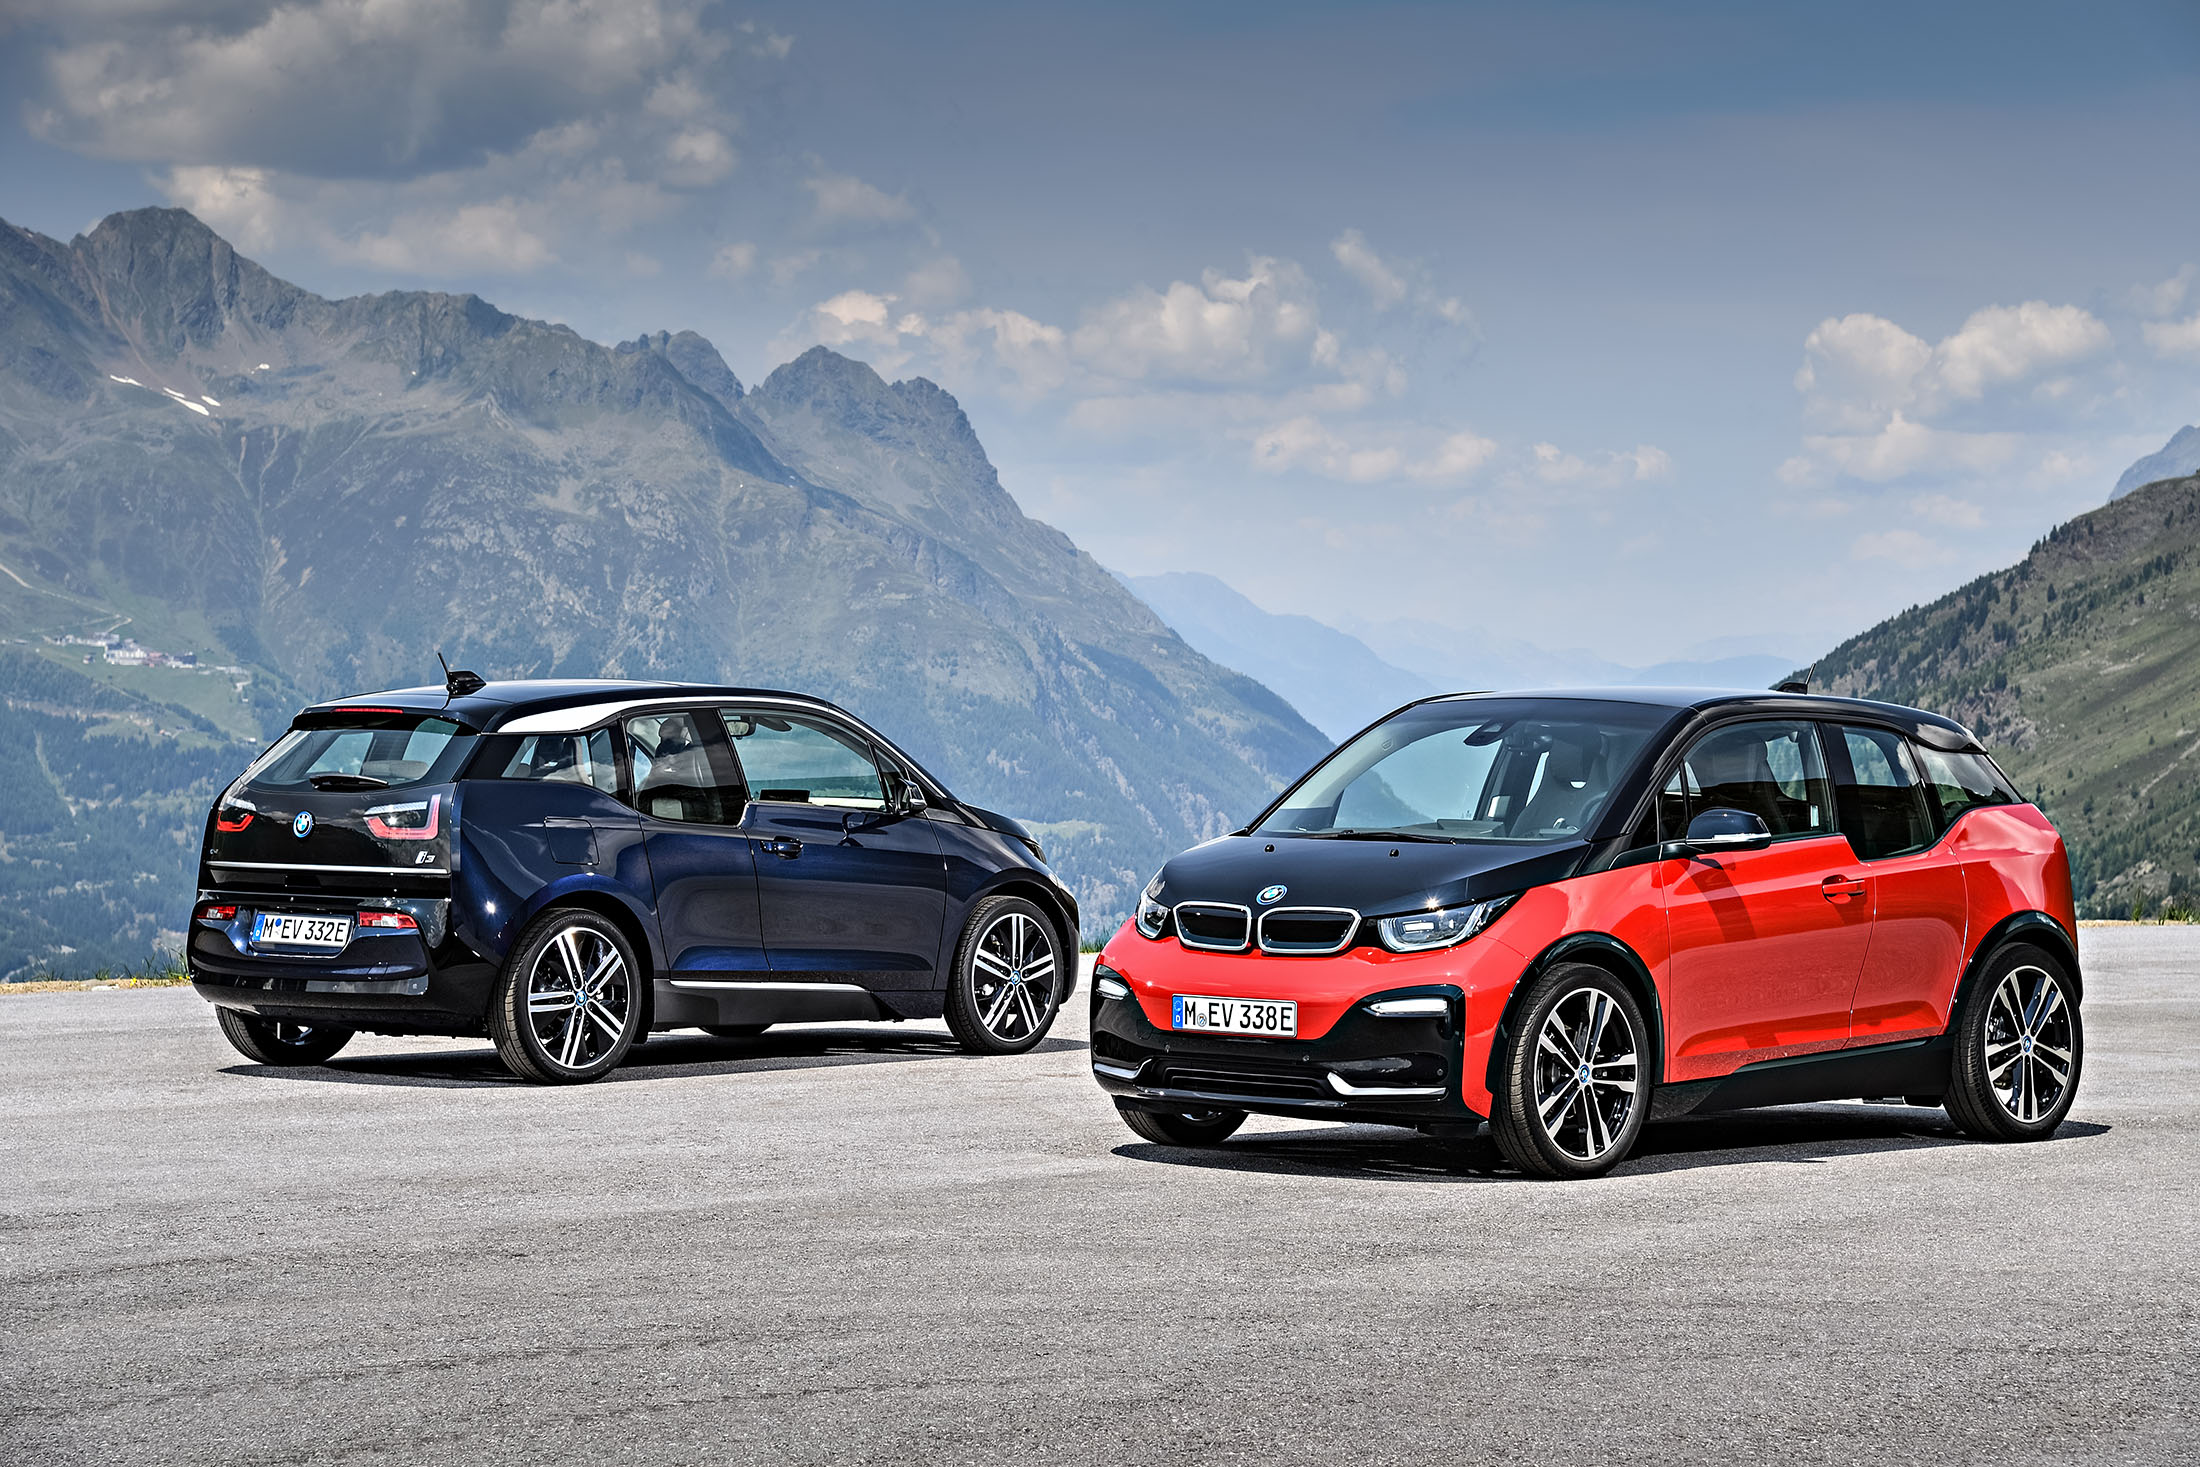 Bmw Softens Electric I3 City Car S Boxy Look To Counter Tesla